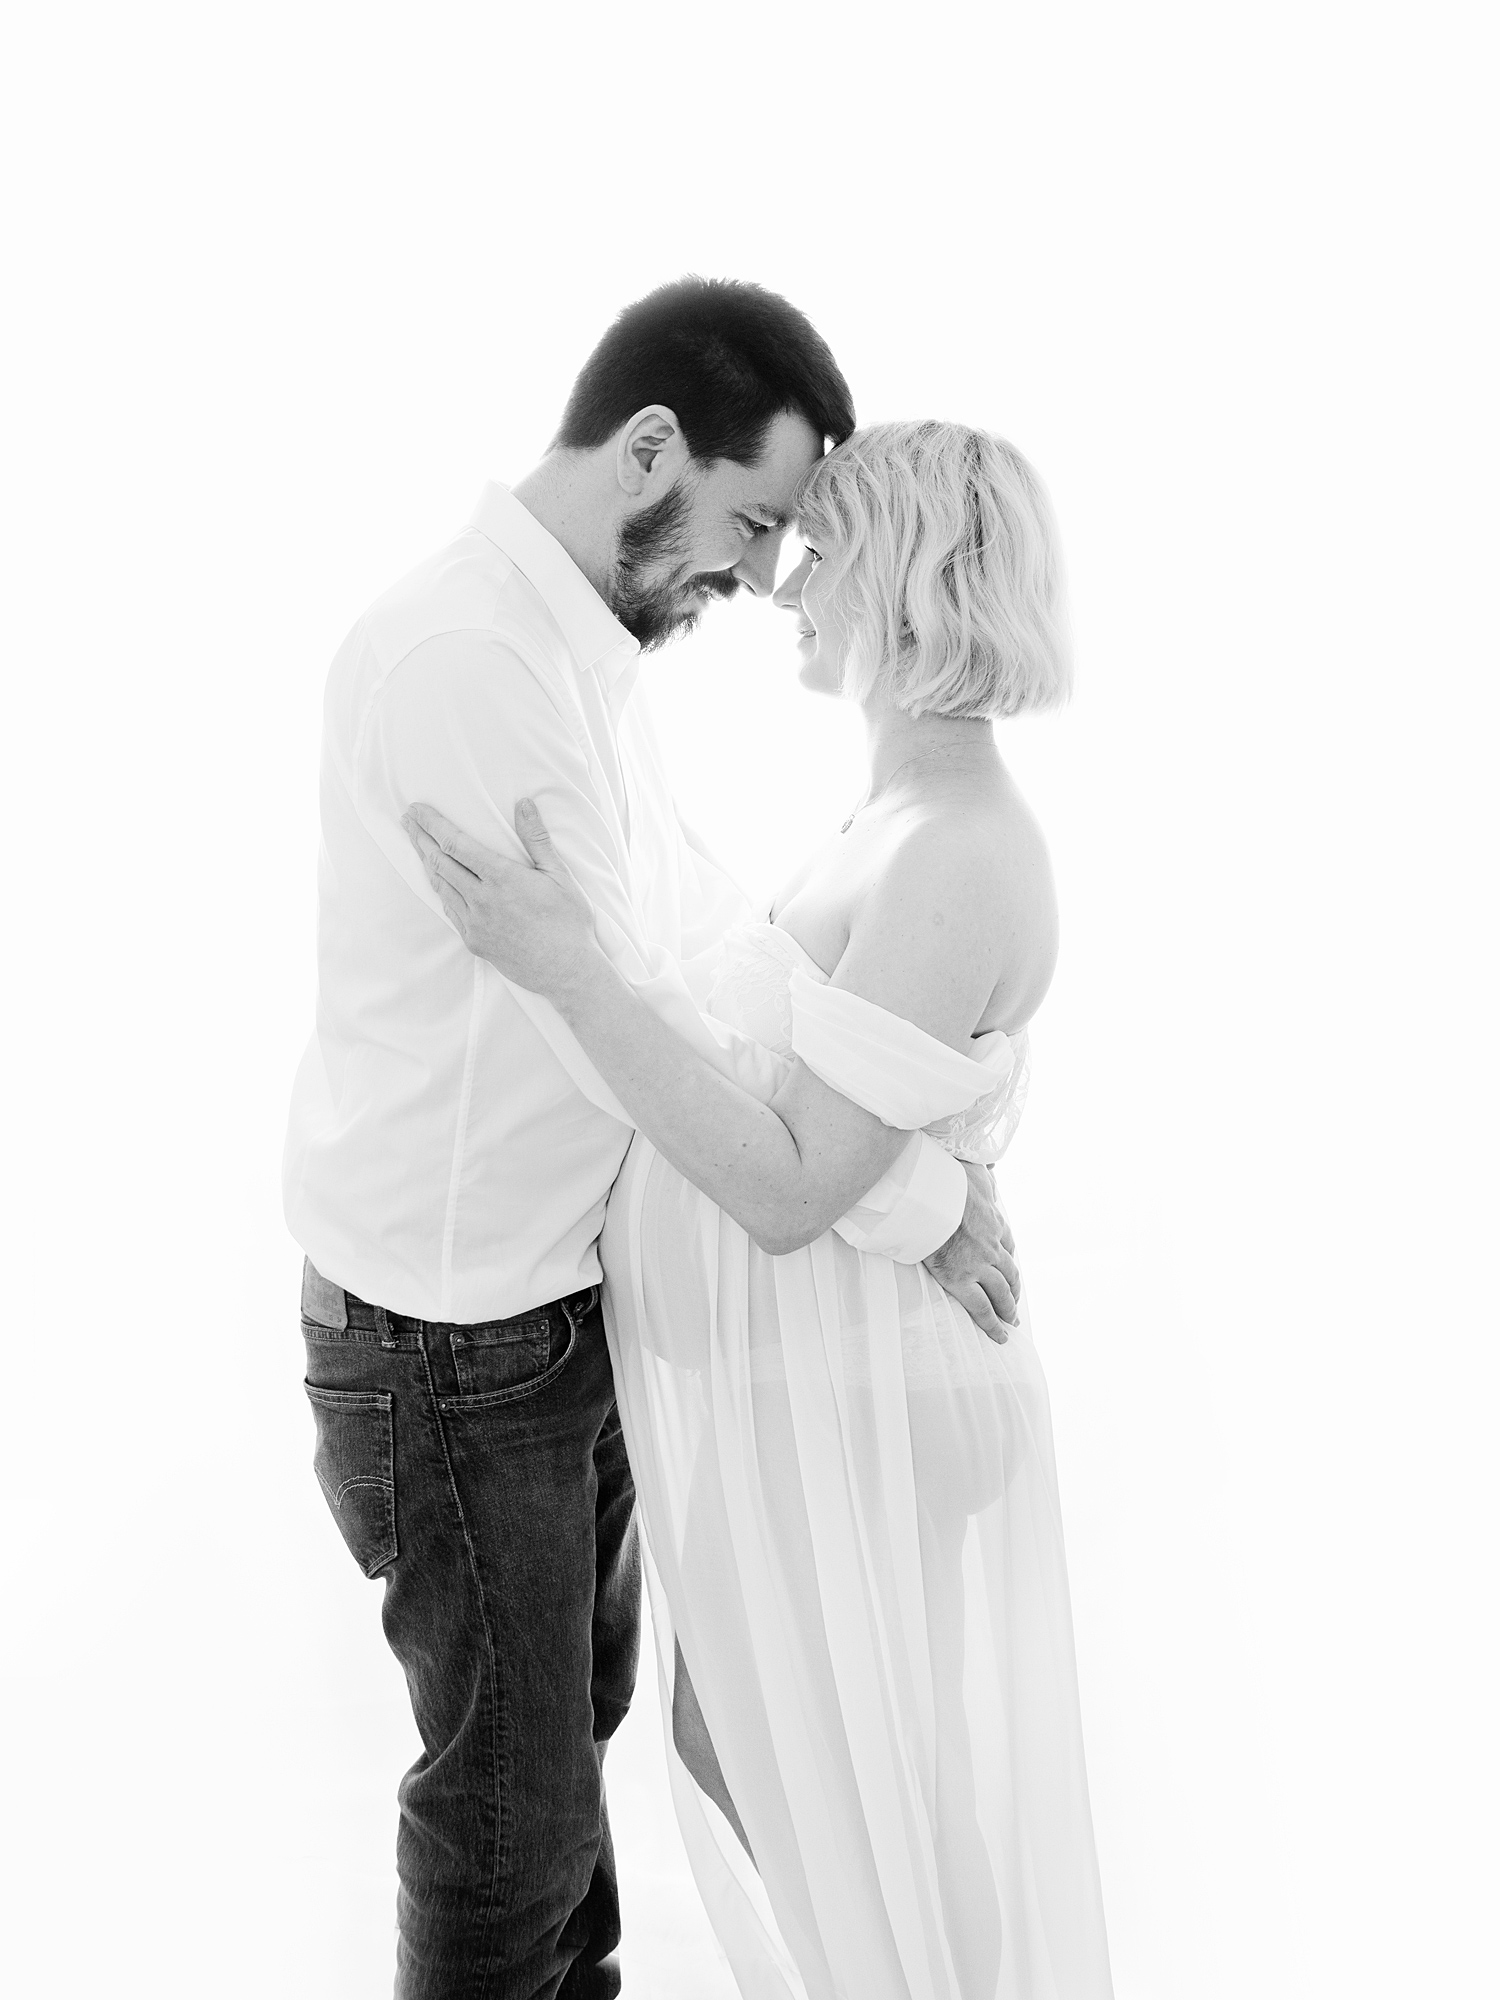 backlit black and white studio maternity photography edinburgh midlothian